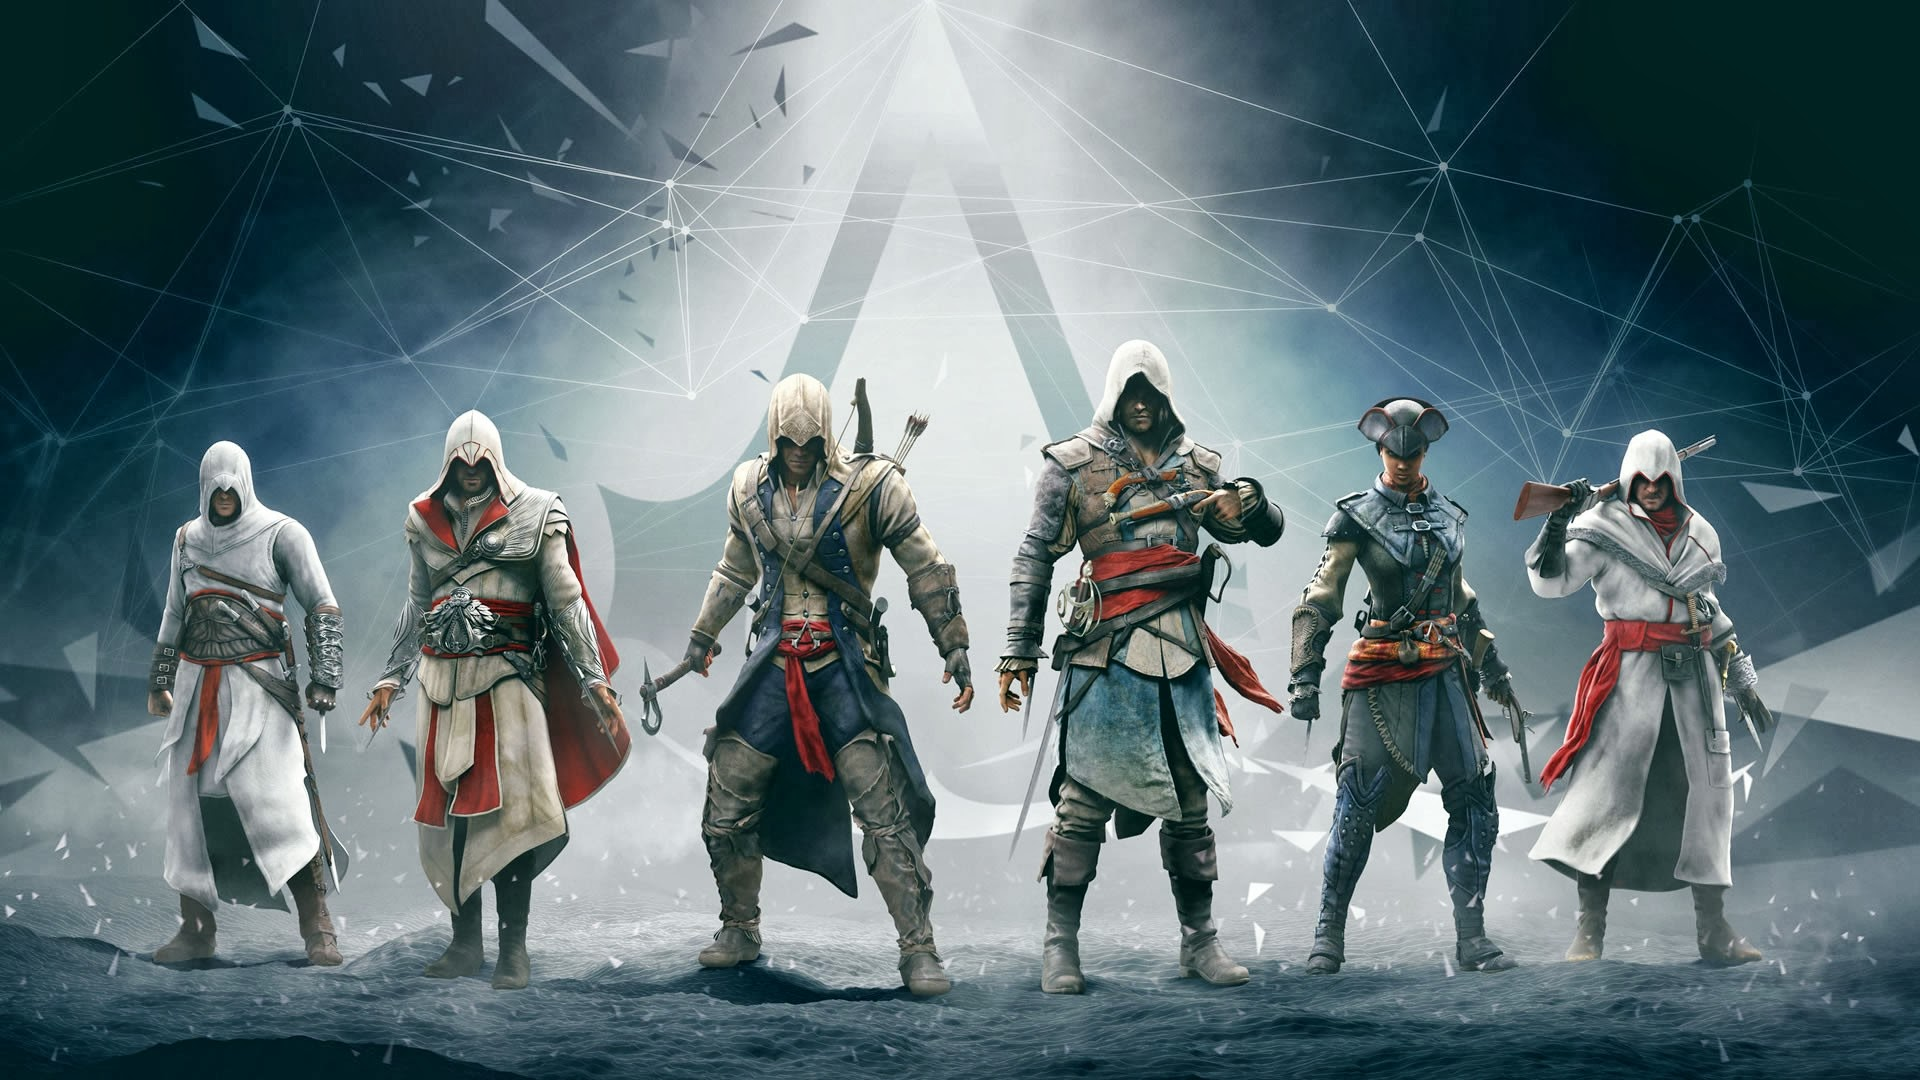 HD Wallpapers Assassins Creed Altair Ezio Connor Edward